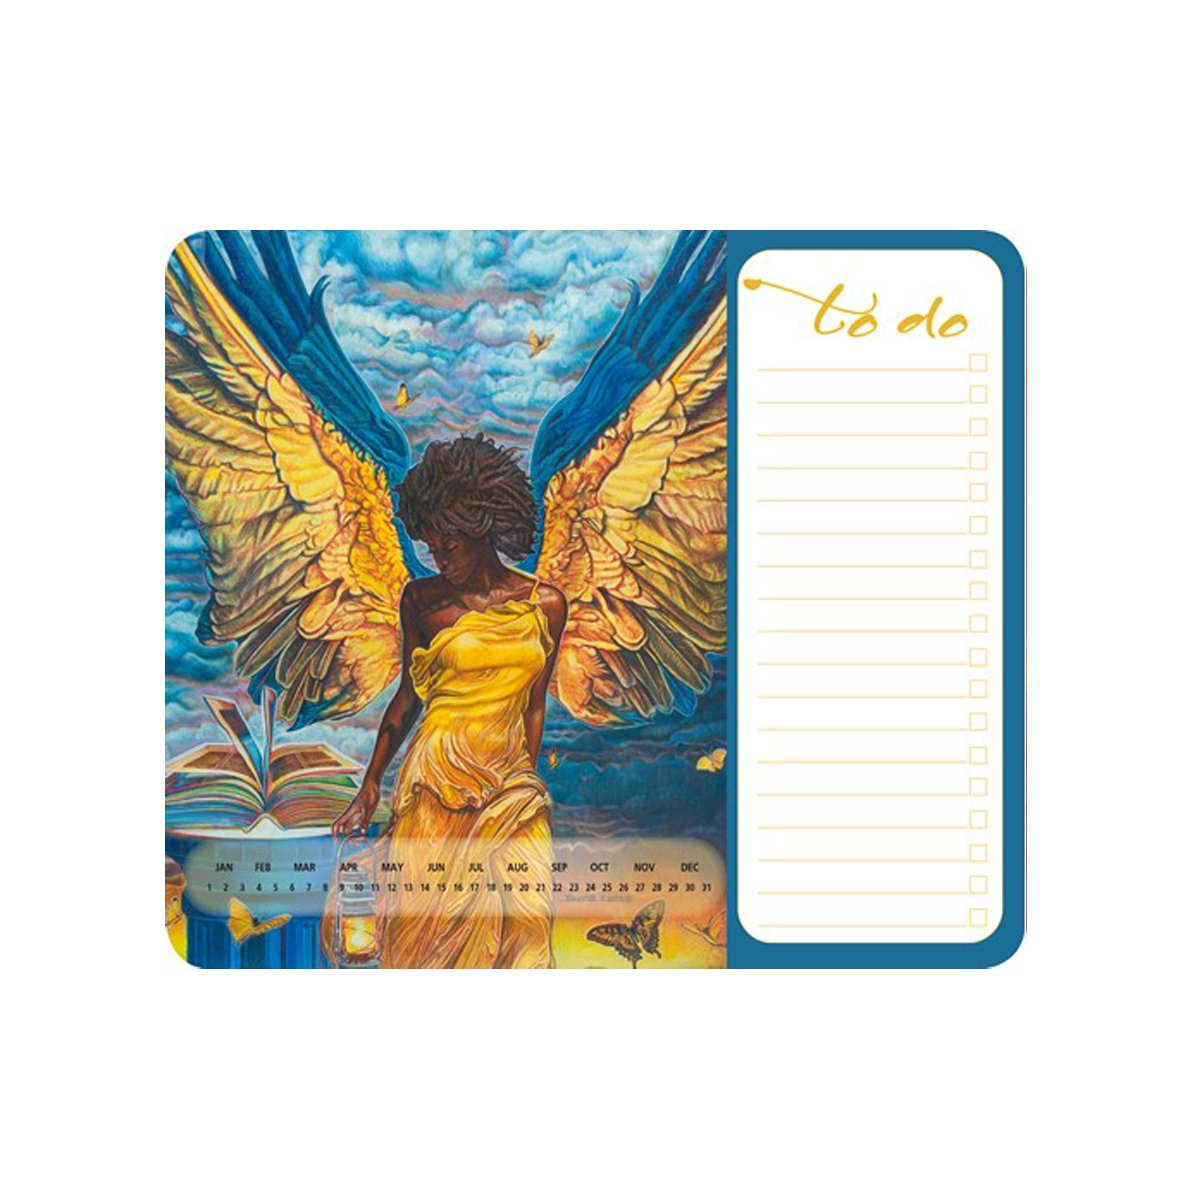 Angelic Guidance: Memo Mouse Pad by Buena Johnson